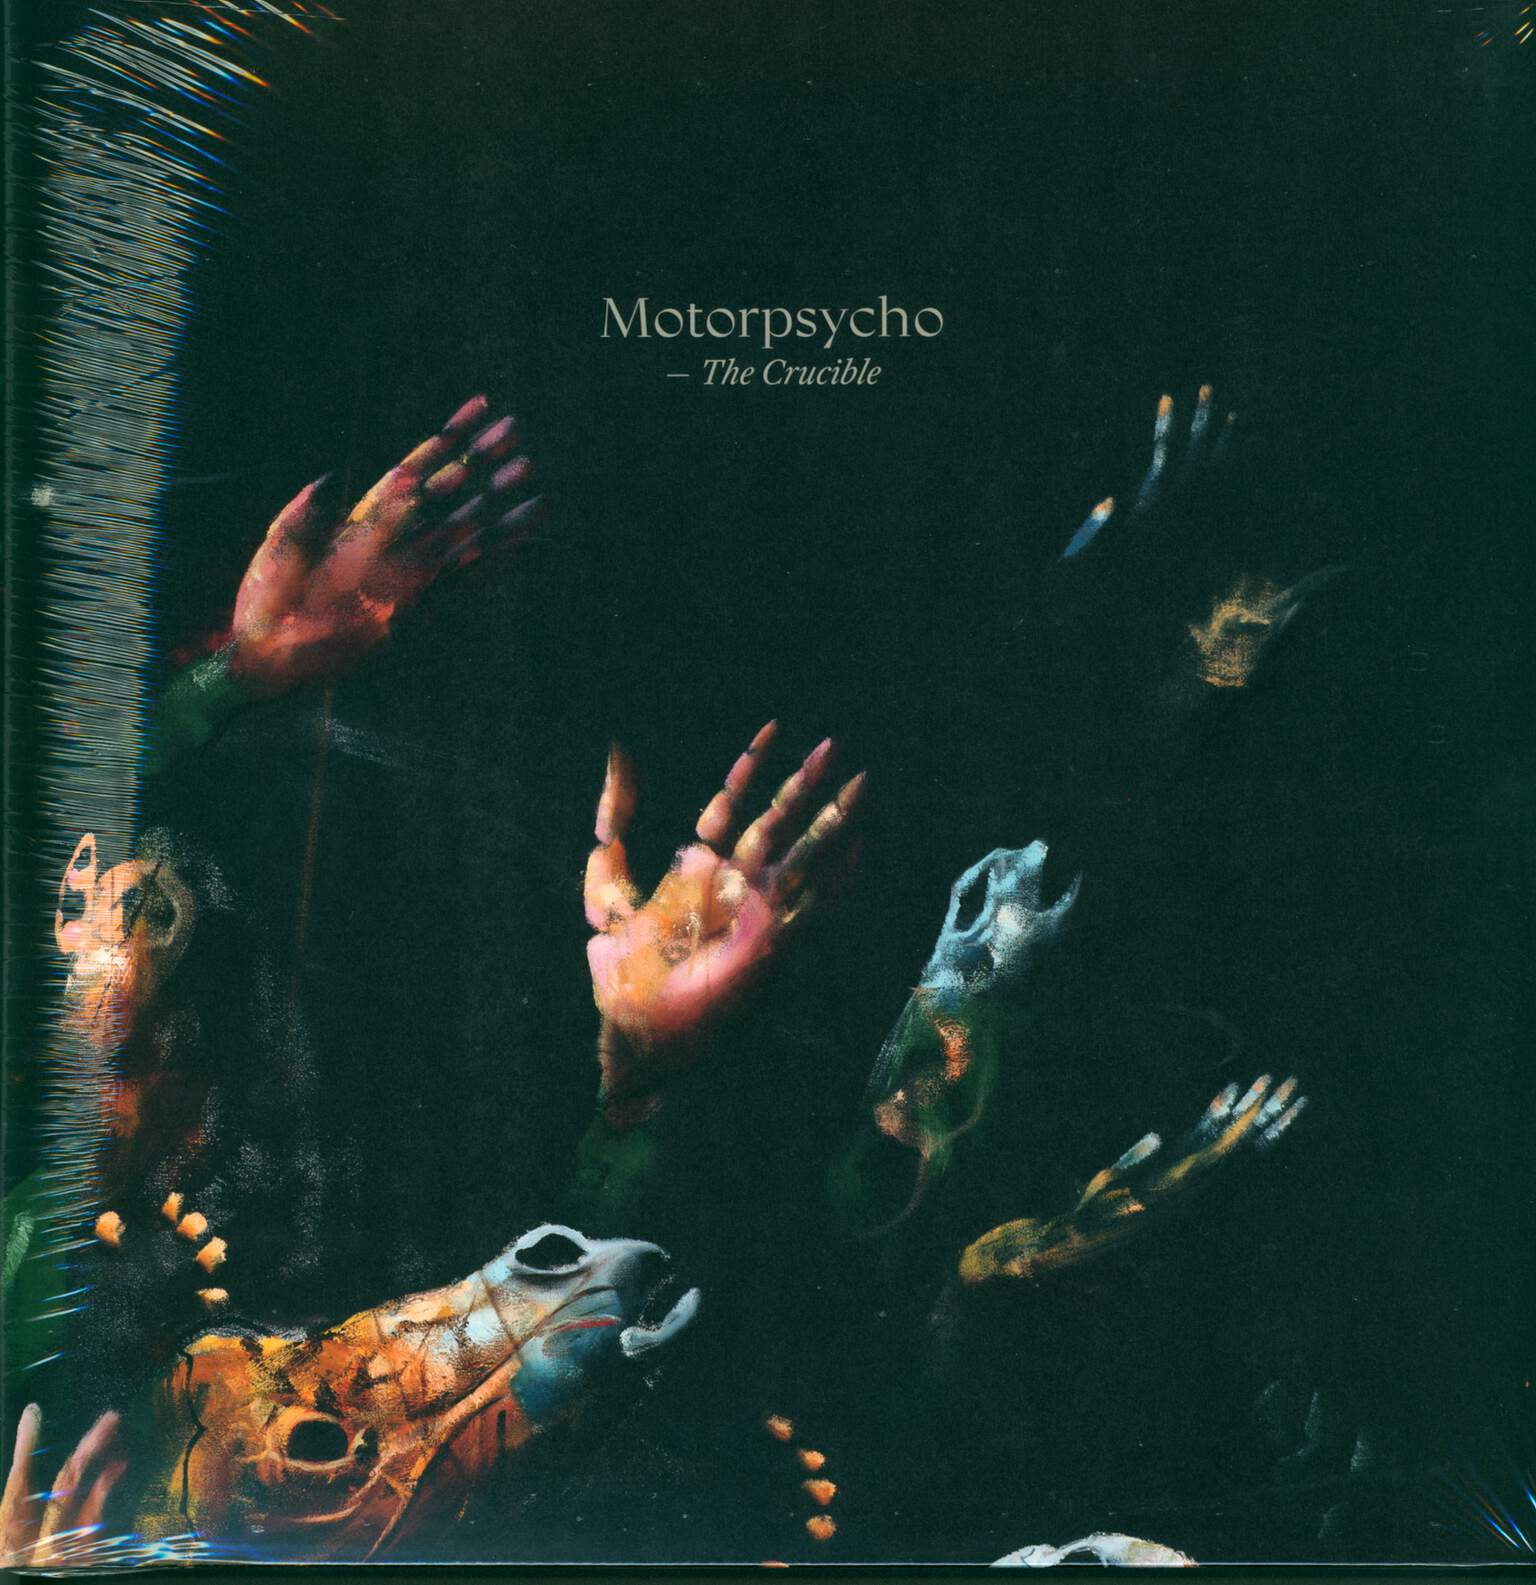 Motorpsycho: The Crucible, 1×LP (Vinyl)